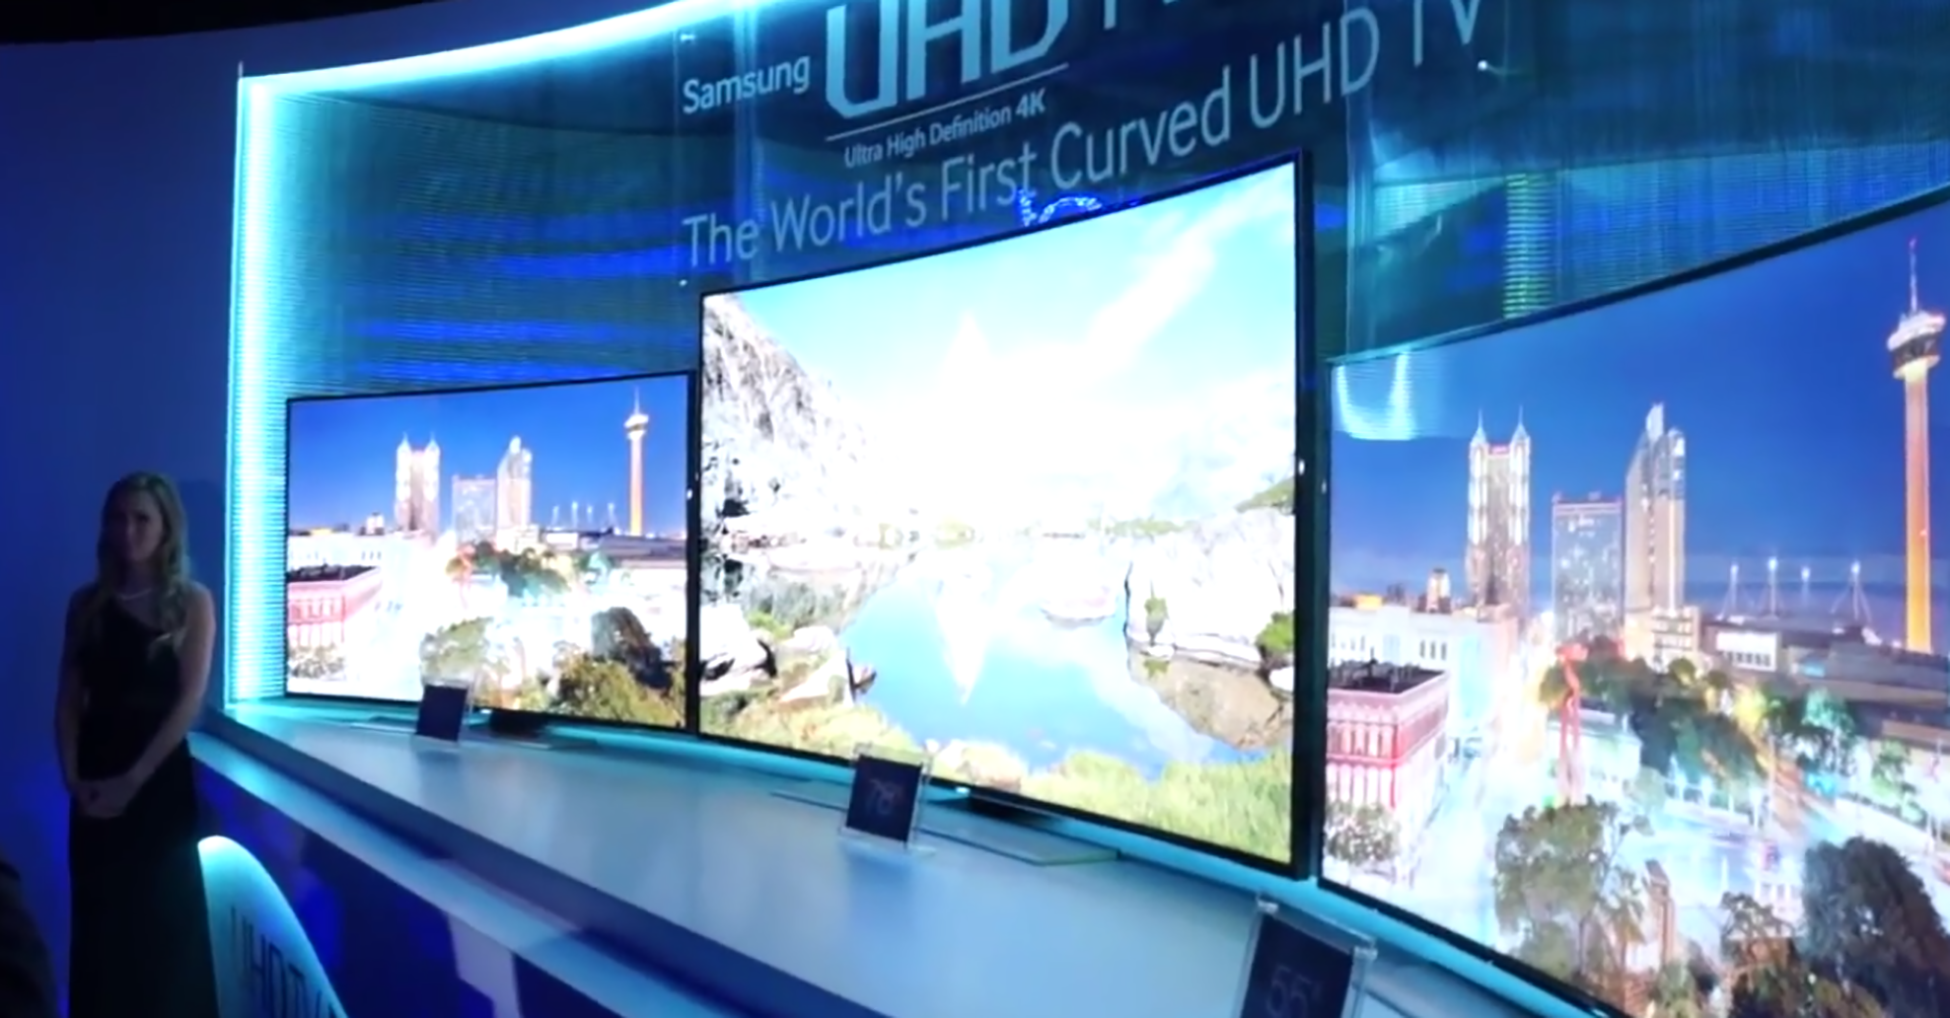 A photograph shows a large television with a concave screen. Above the television display is a sign that reads, Samsung U H D, the world's first curved U H D T V.